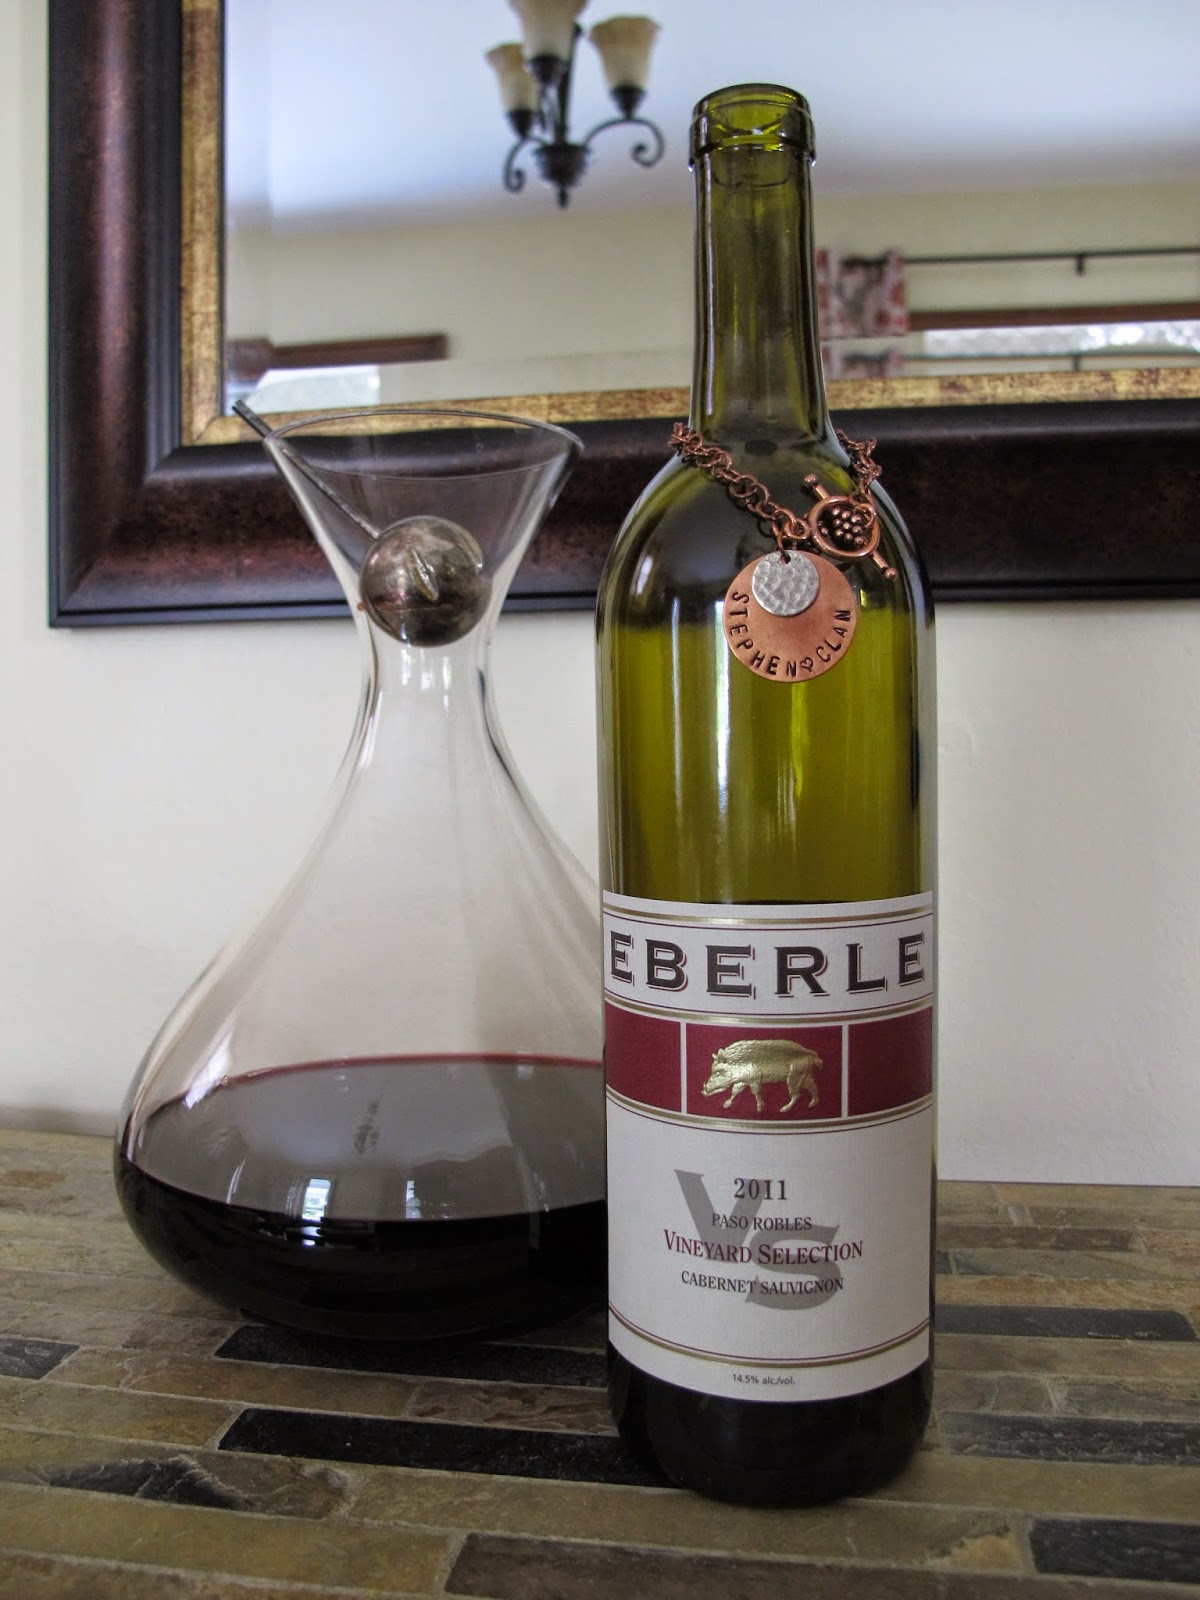 Cabernet Sauvignon from Eberle Winery